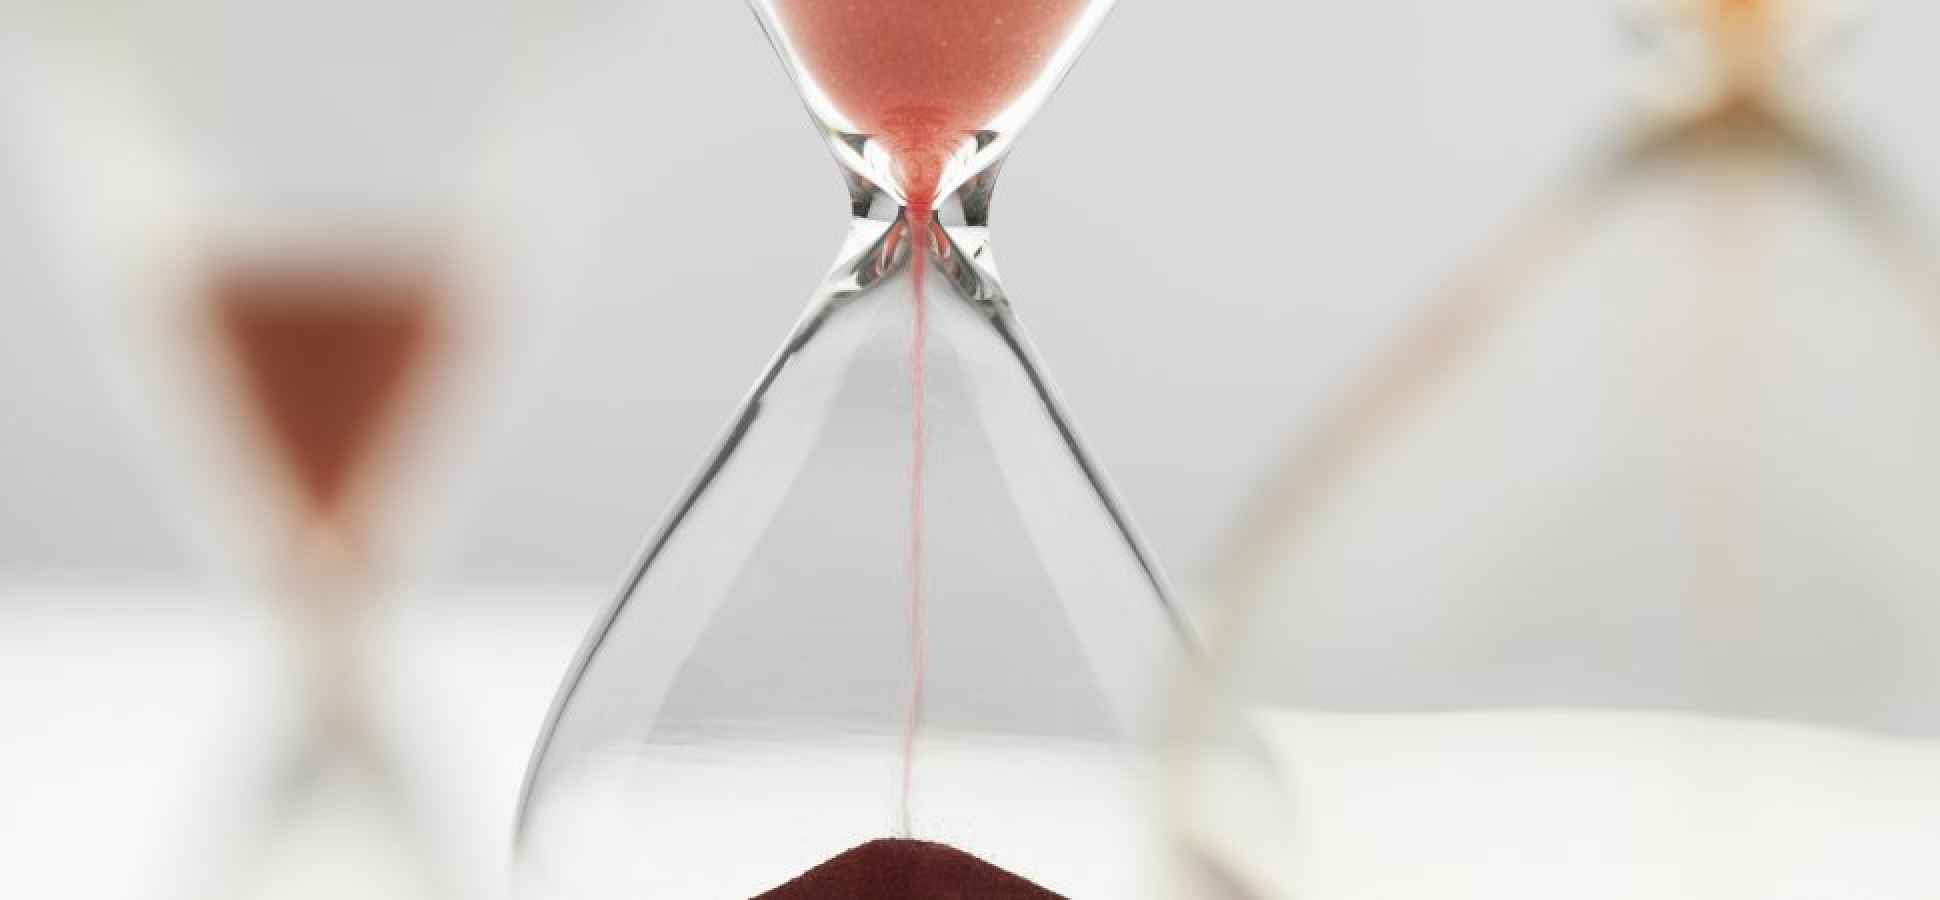 5 Tasks Entrepreneurs Should Finish Before the End of the Year